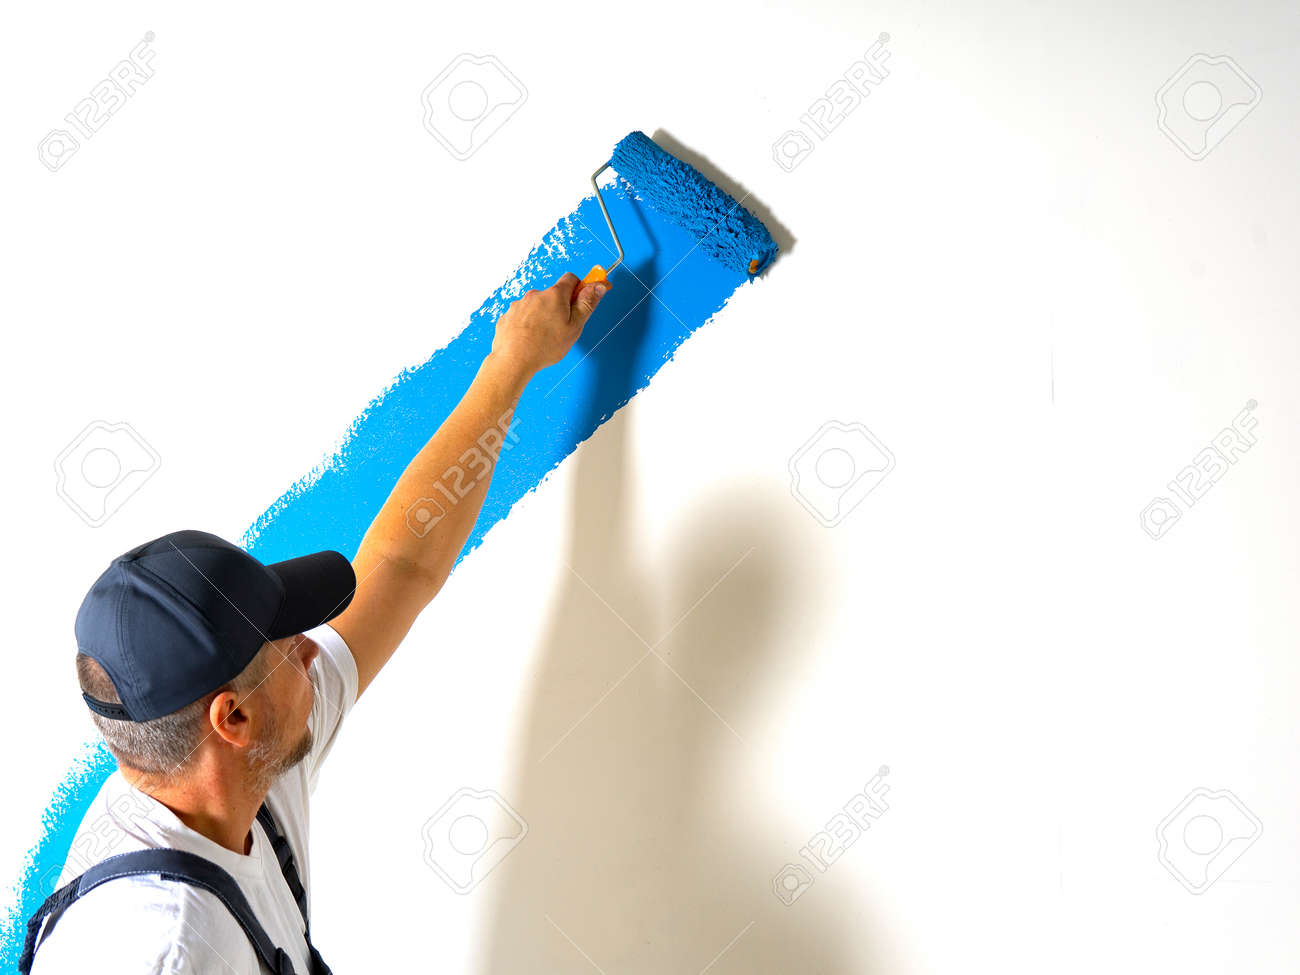 Male painter painting a white wall with a roller in blue color renovations or construction concept - 170234520